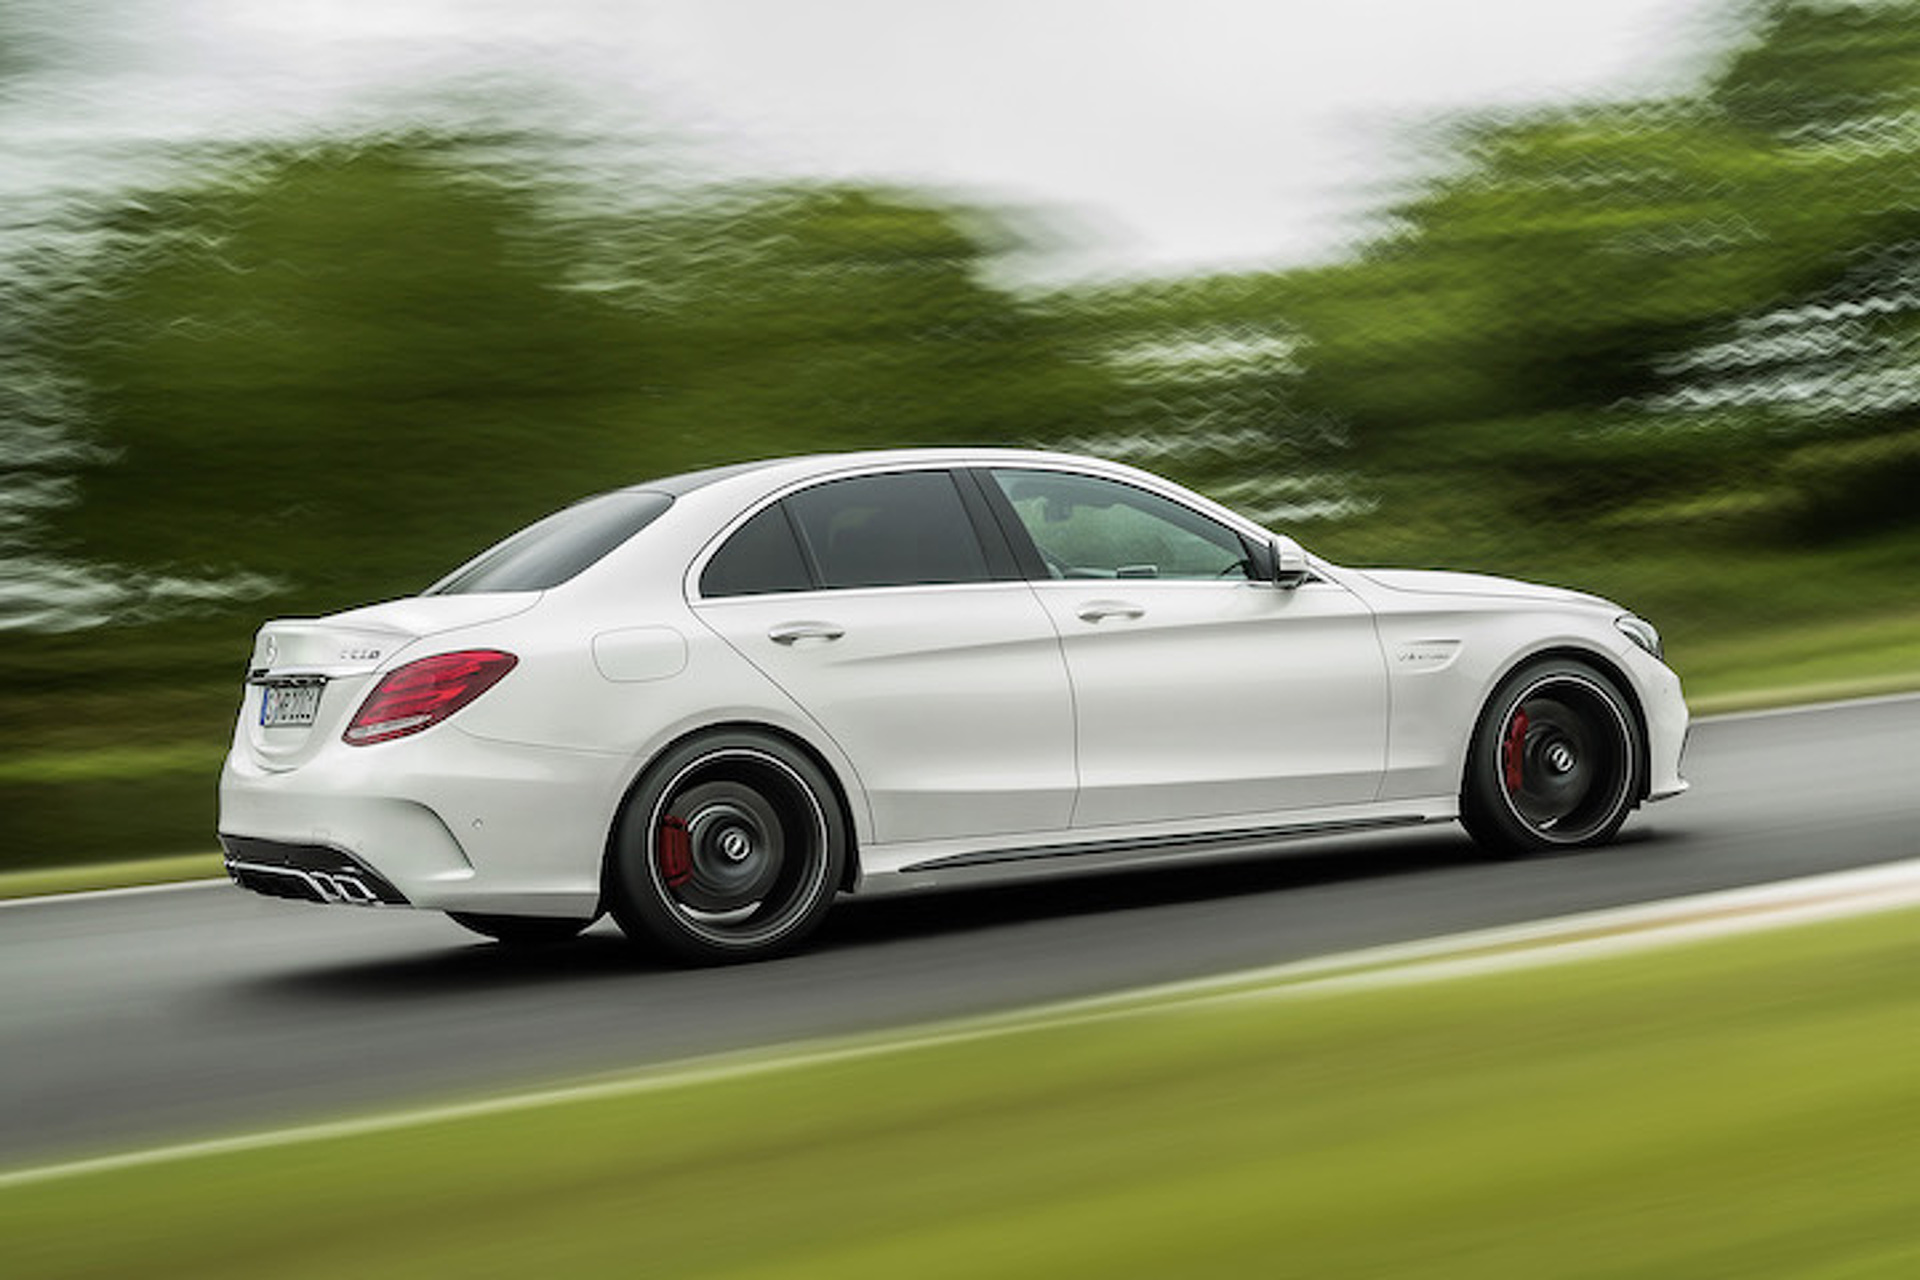 Upcoming Mercedes C-Class Coupe Will Trade Luxury for Sport